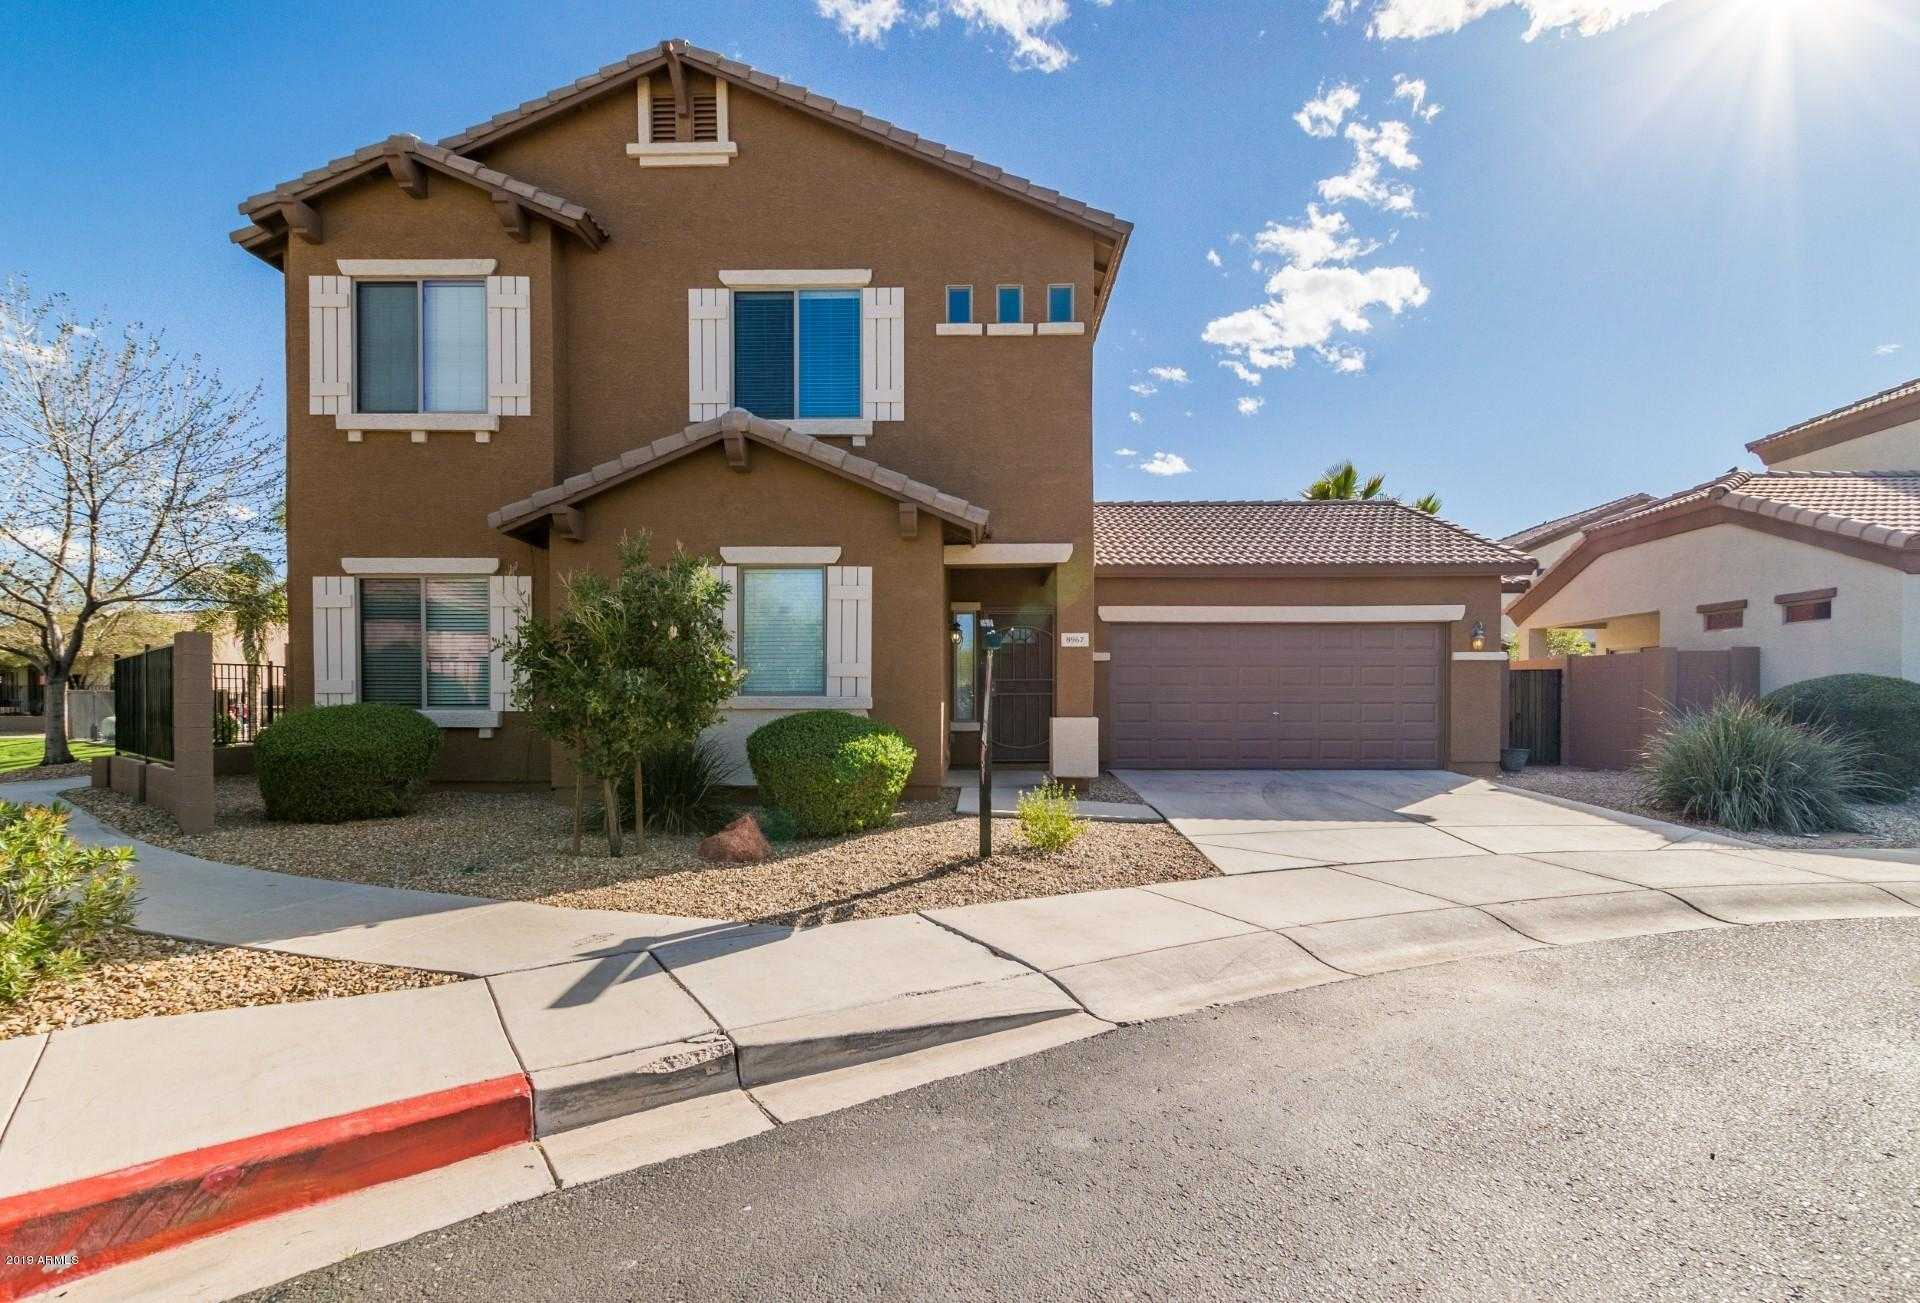 $300,000 - 4Br/3Ba - Home for Sale in Trails At Suraya Park, Peoria